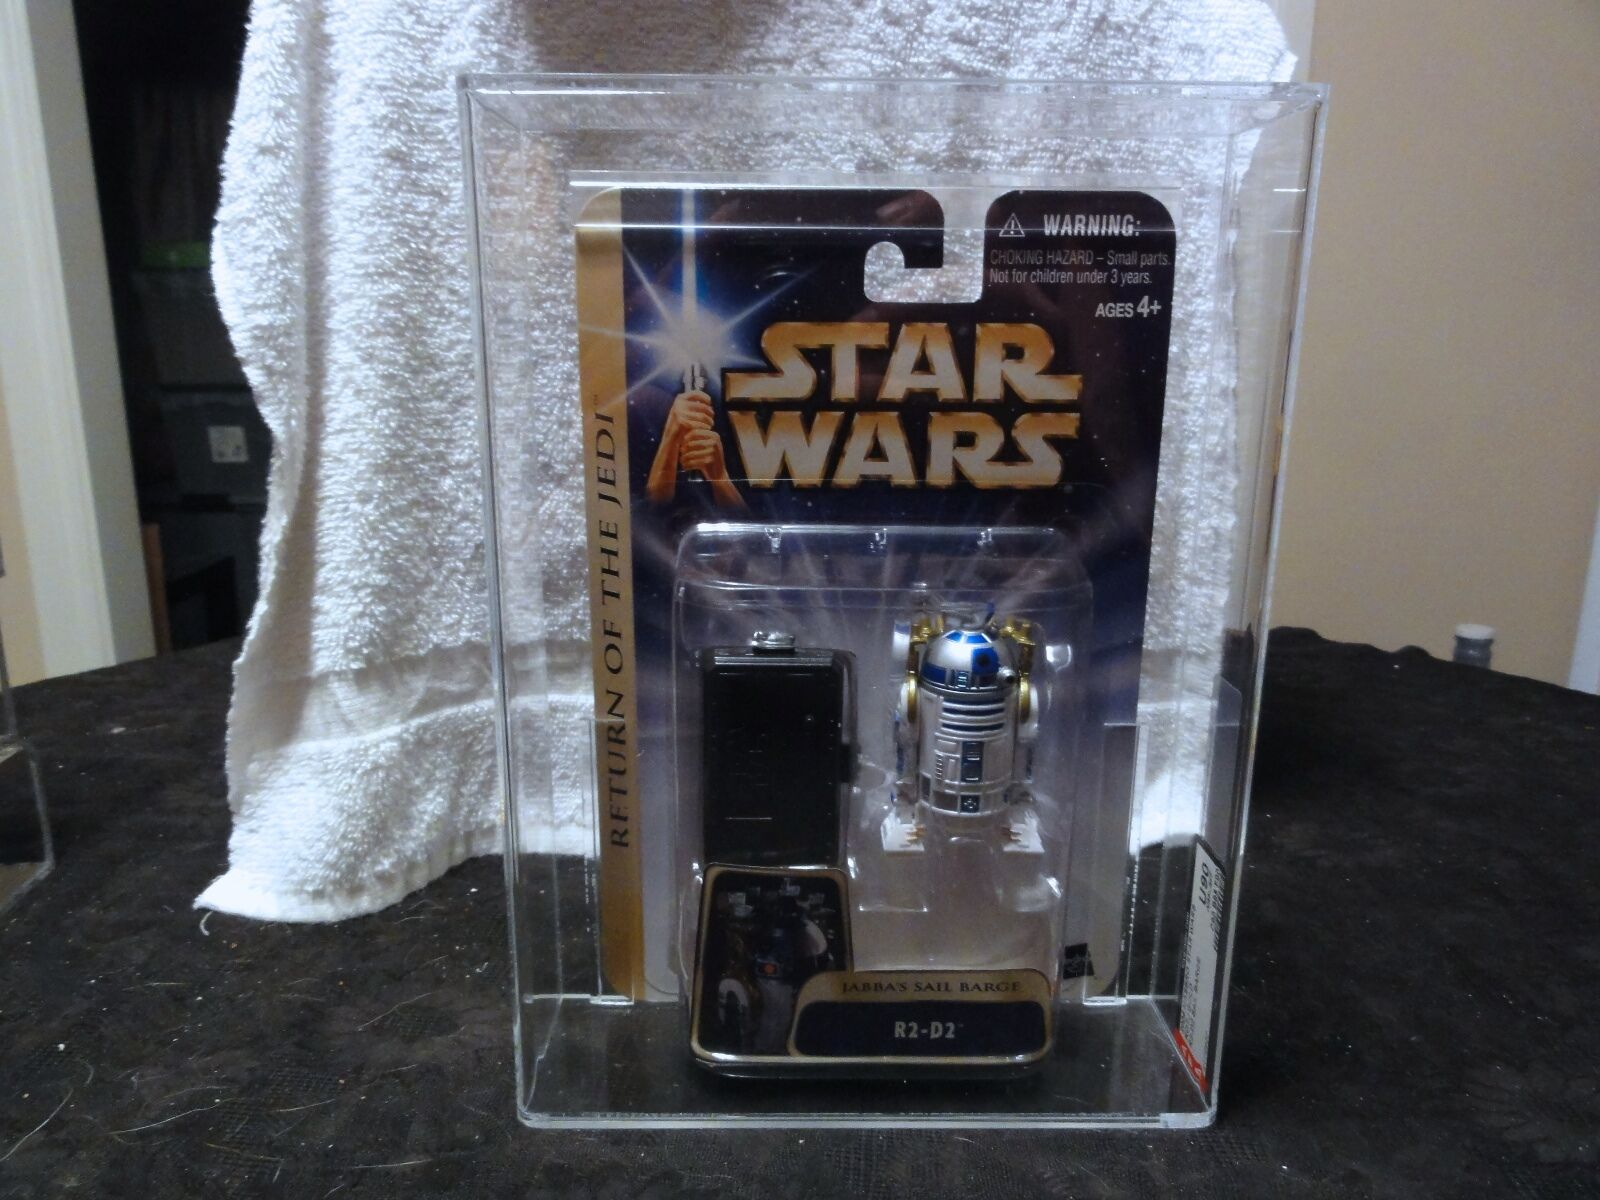 Star Wars 2004 ROTJ Gold R2 - D2 Sail Barge AFA Sealed MIB BOX